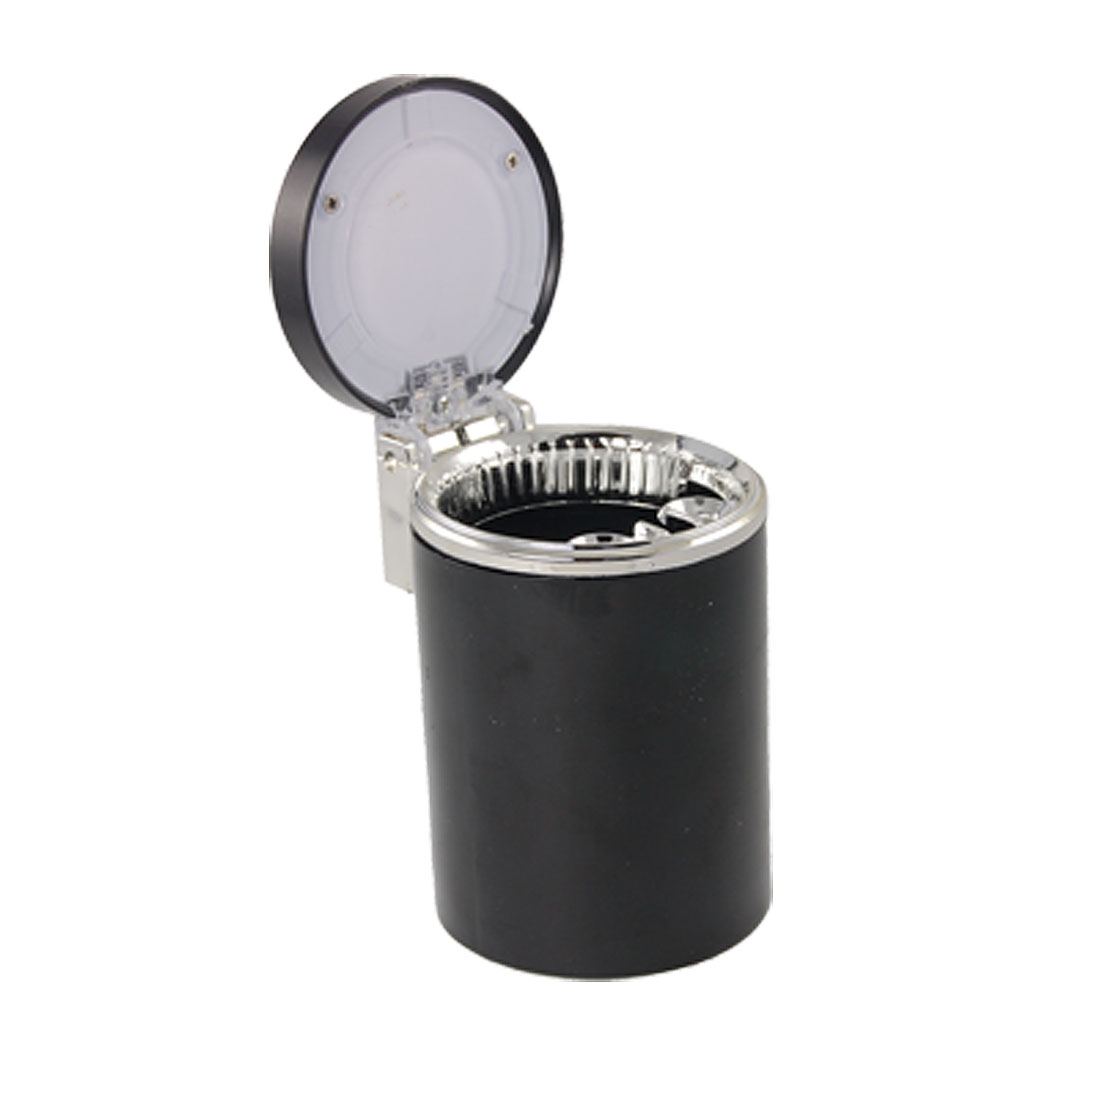 Black Plastic Cylinder Blue LED Light Vehicle Ashtray